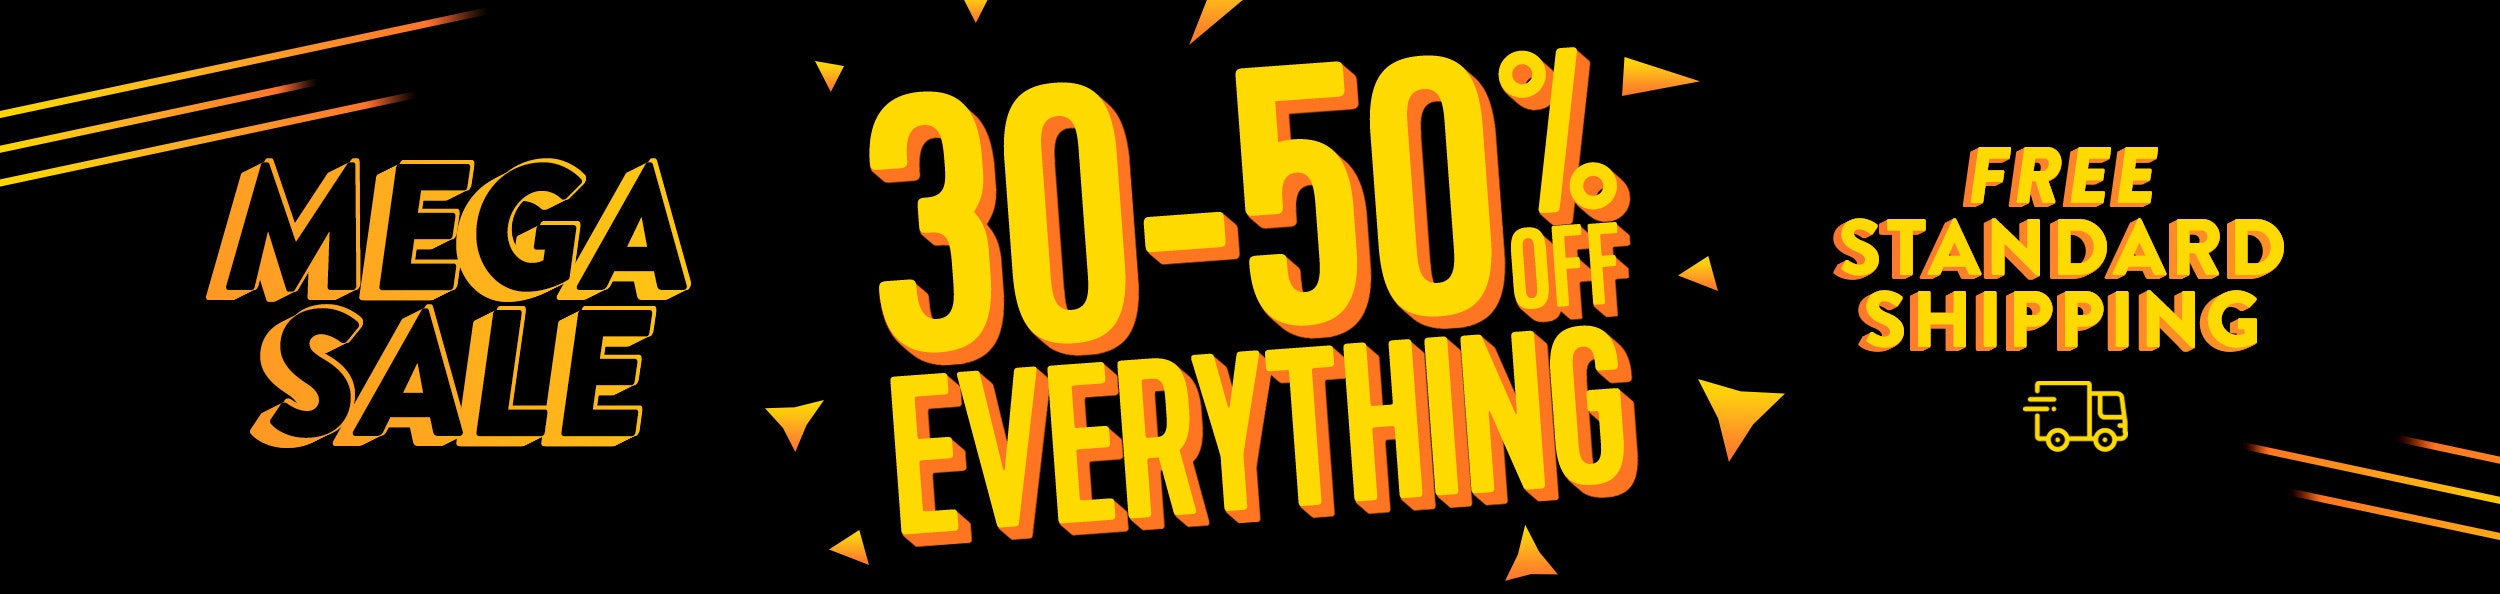 30% – 50% off everything